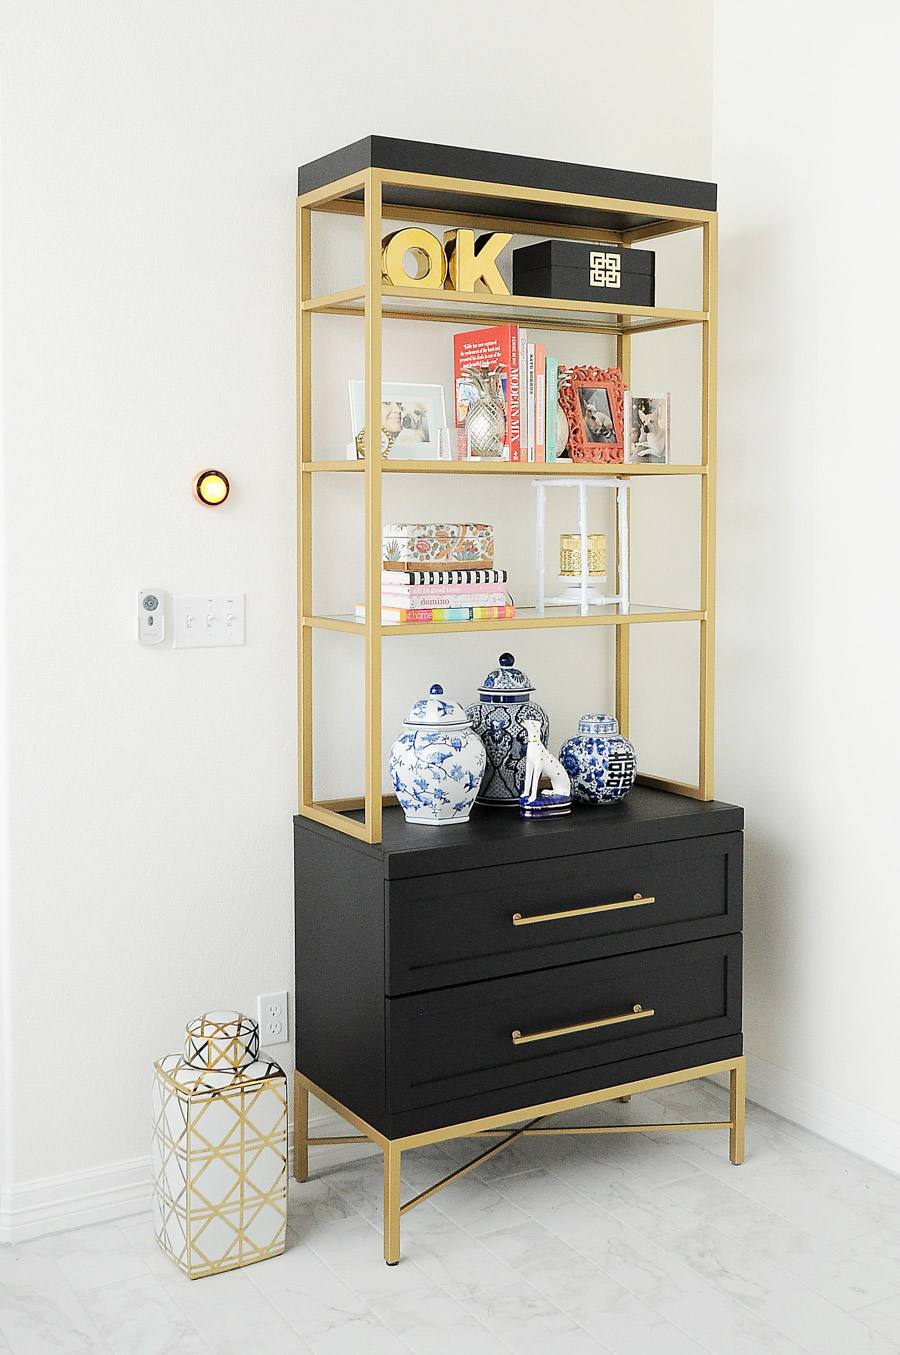 A gorgeous black and gold etagere styled with ginger jars, thrifted finds, chinoiserie decor and design books. Love the curated and chic look!